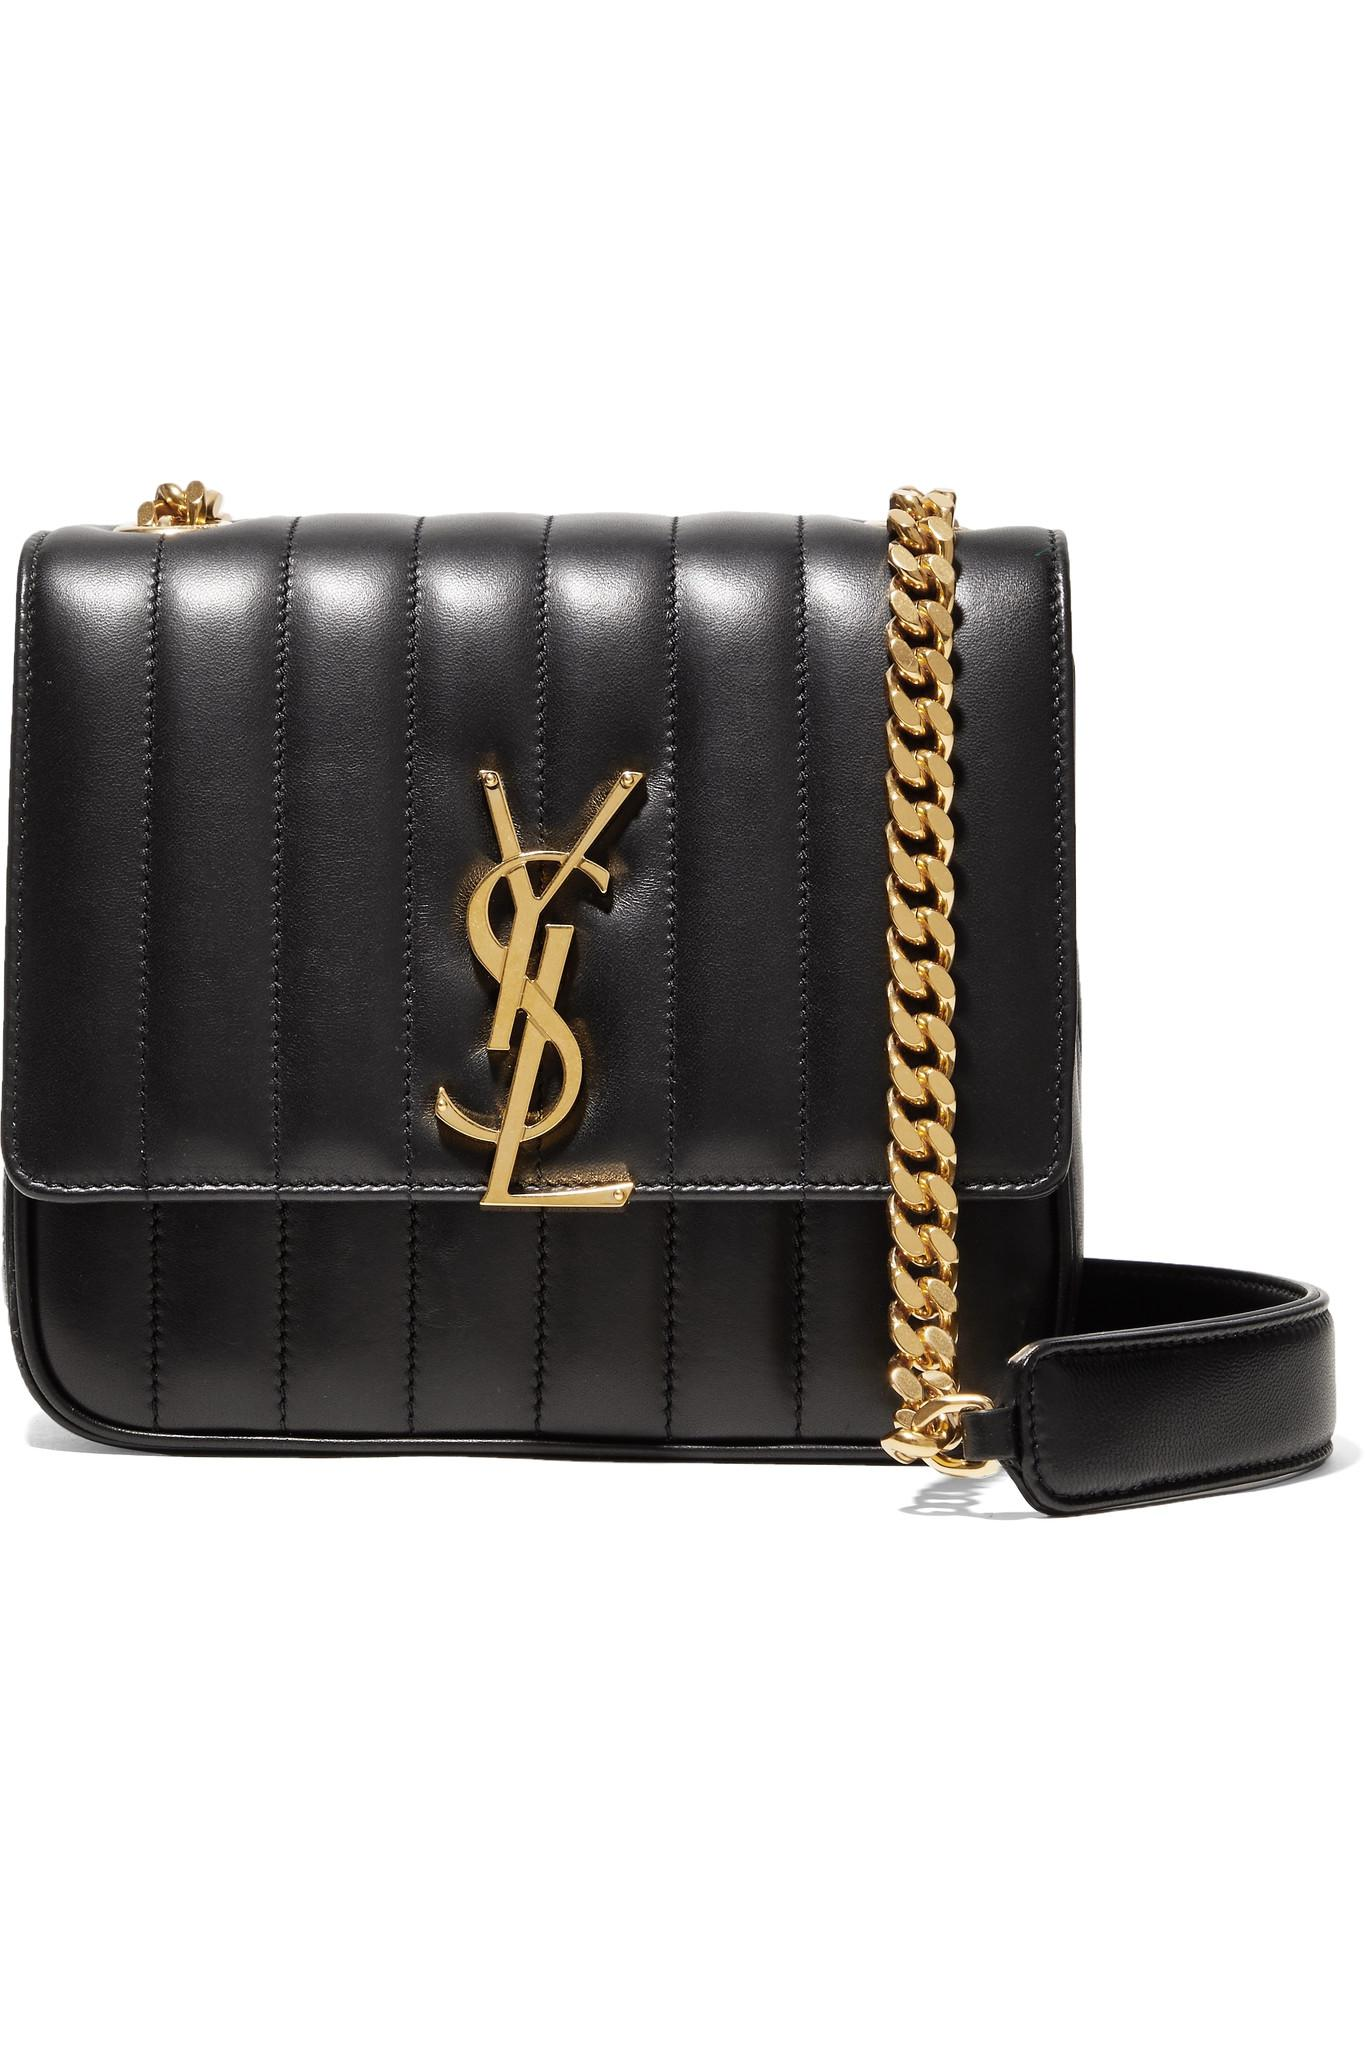 7dfd555c41 Saint Laurent Vicky Medium Quilted Leather Shoulder Bag in Black - Lyst